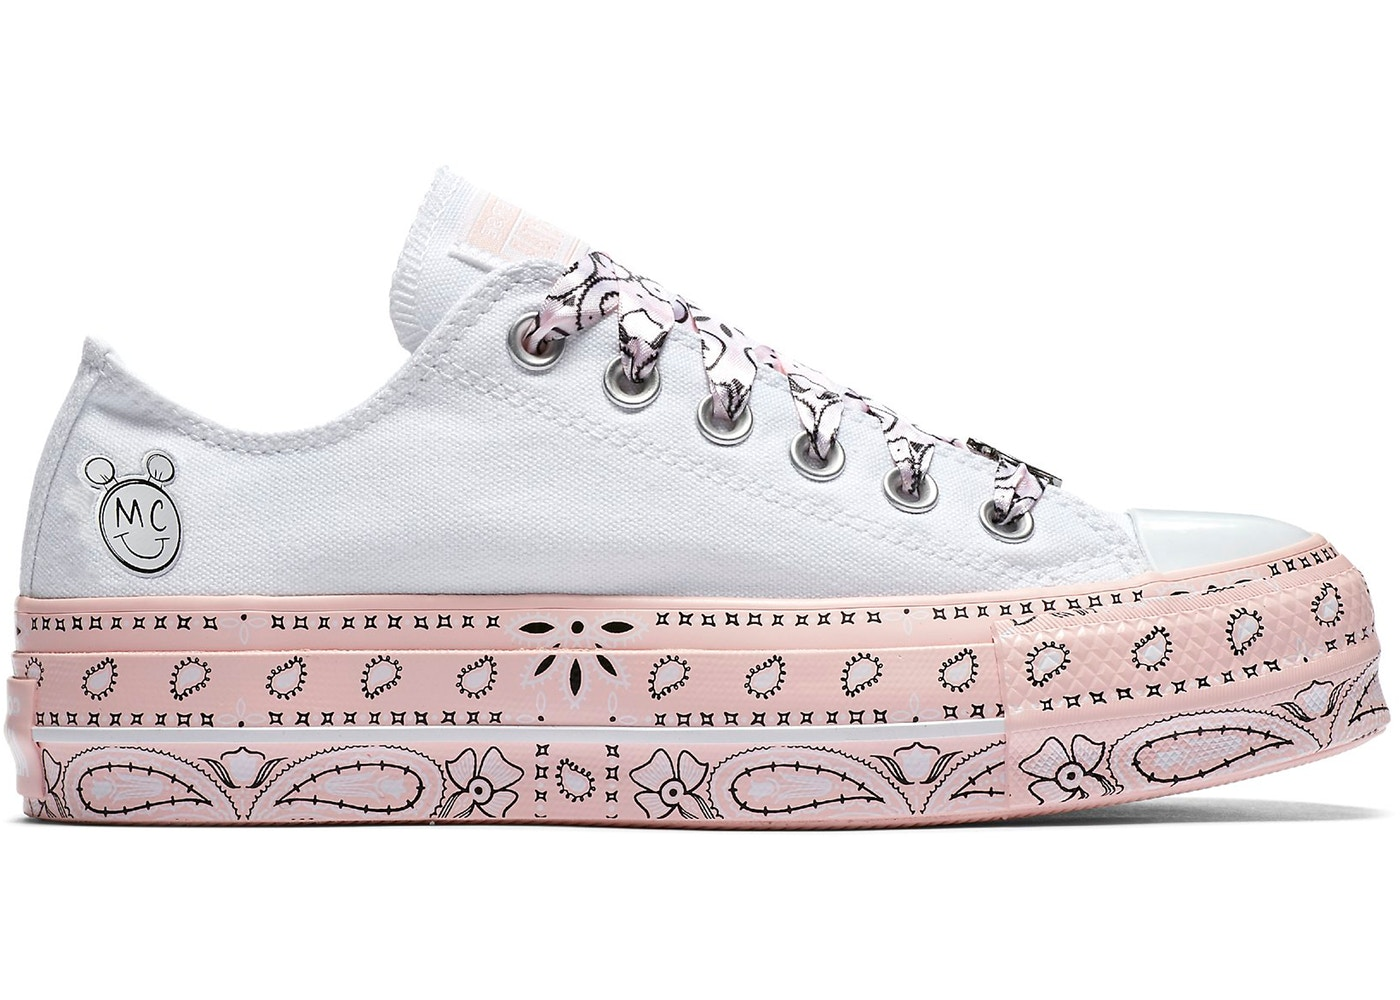 07276701b7 Converse Chuck Taylor All-Star Lift Low Miley Cyrus White (W) - 562236C